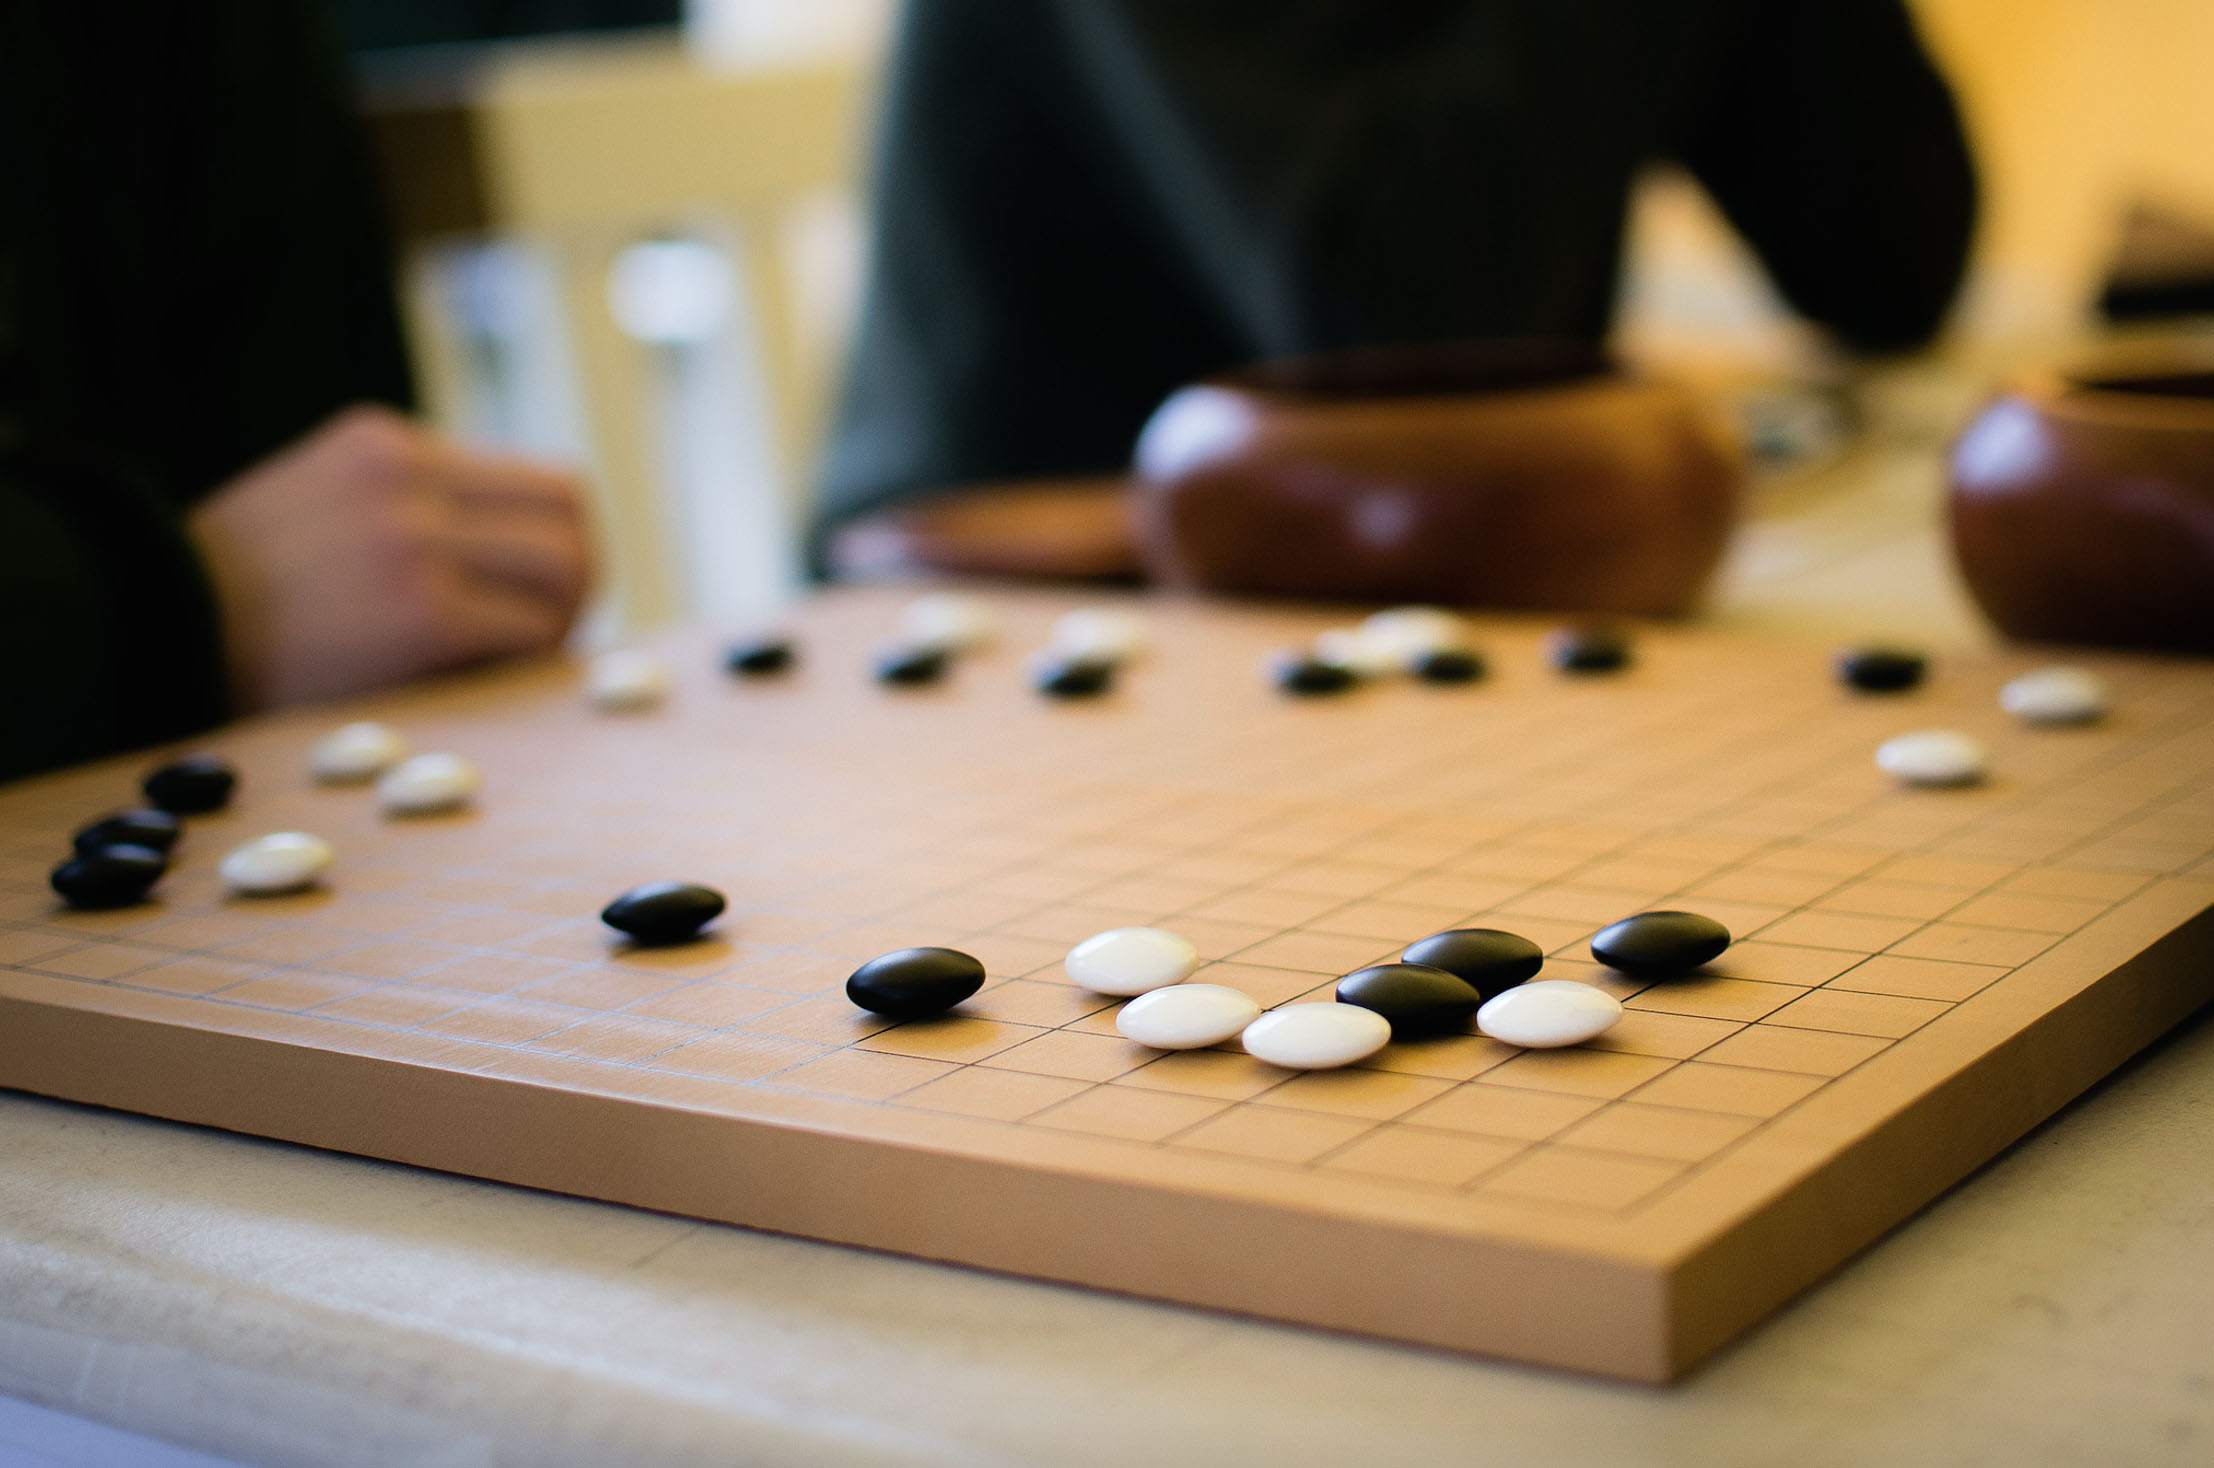 The ancient Chinese game of Go has over 200 possibilities to consider at each move. Photo courtesy of Flickr.